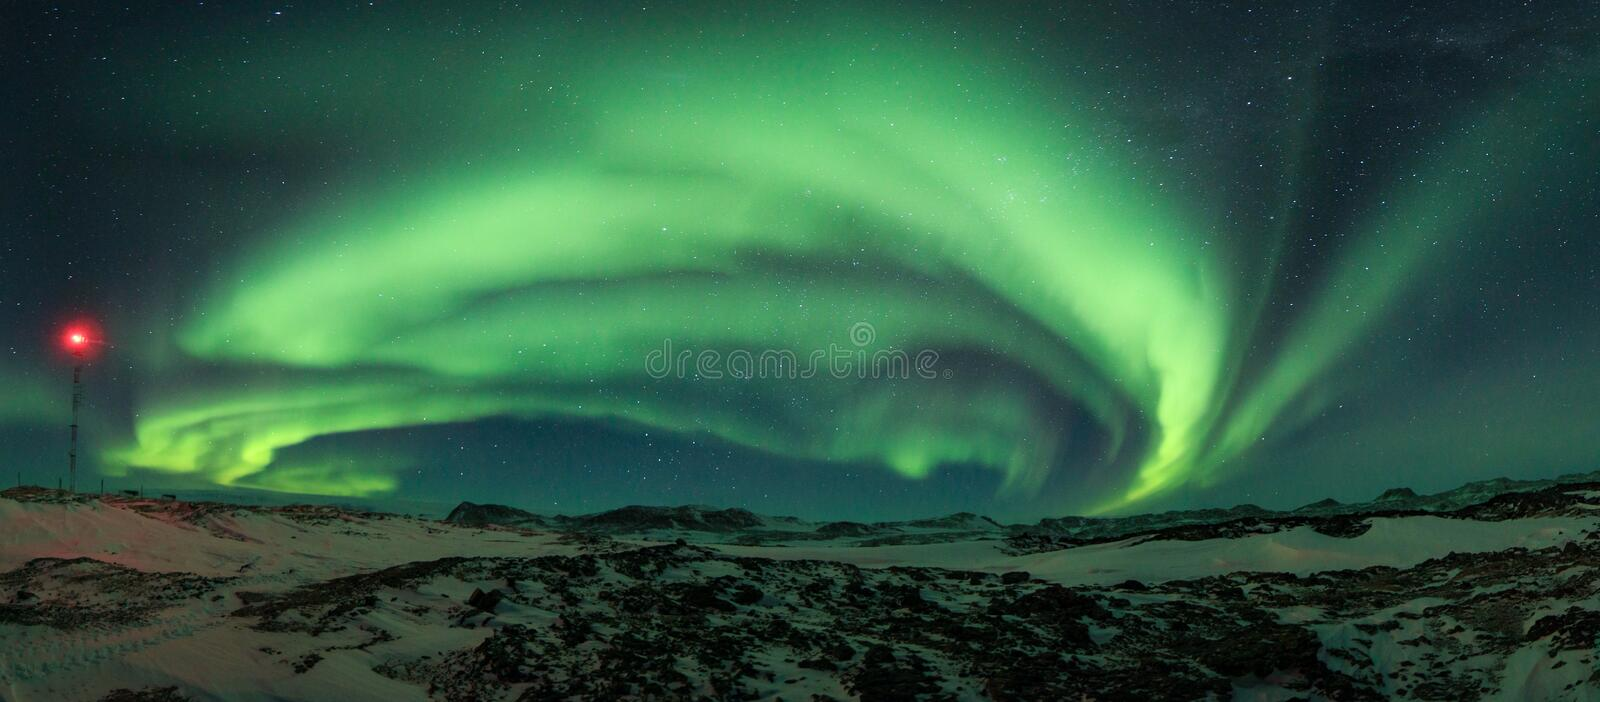 Aurora boreal colorida brilhante no céu noturno foto de stock royalty free